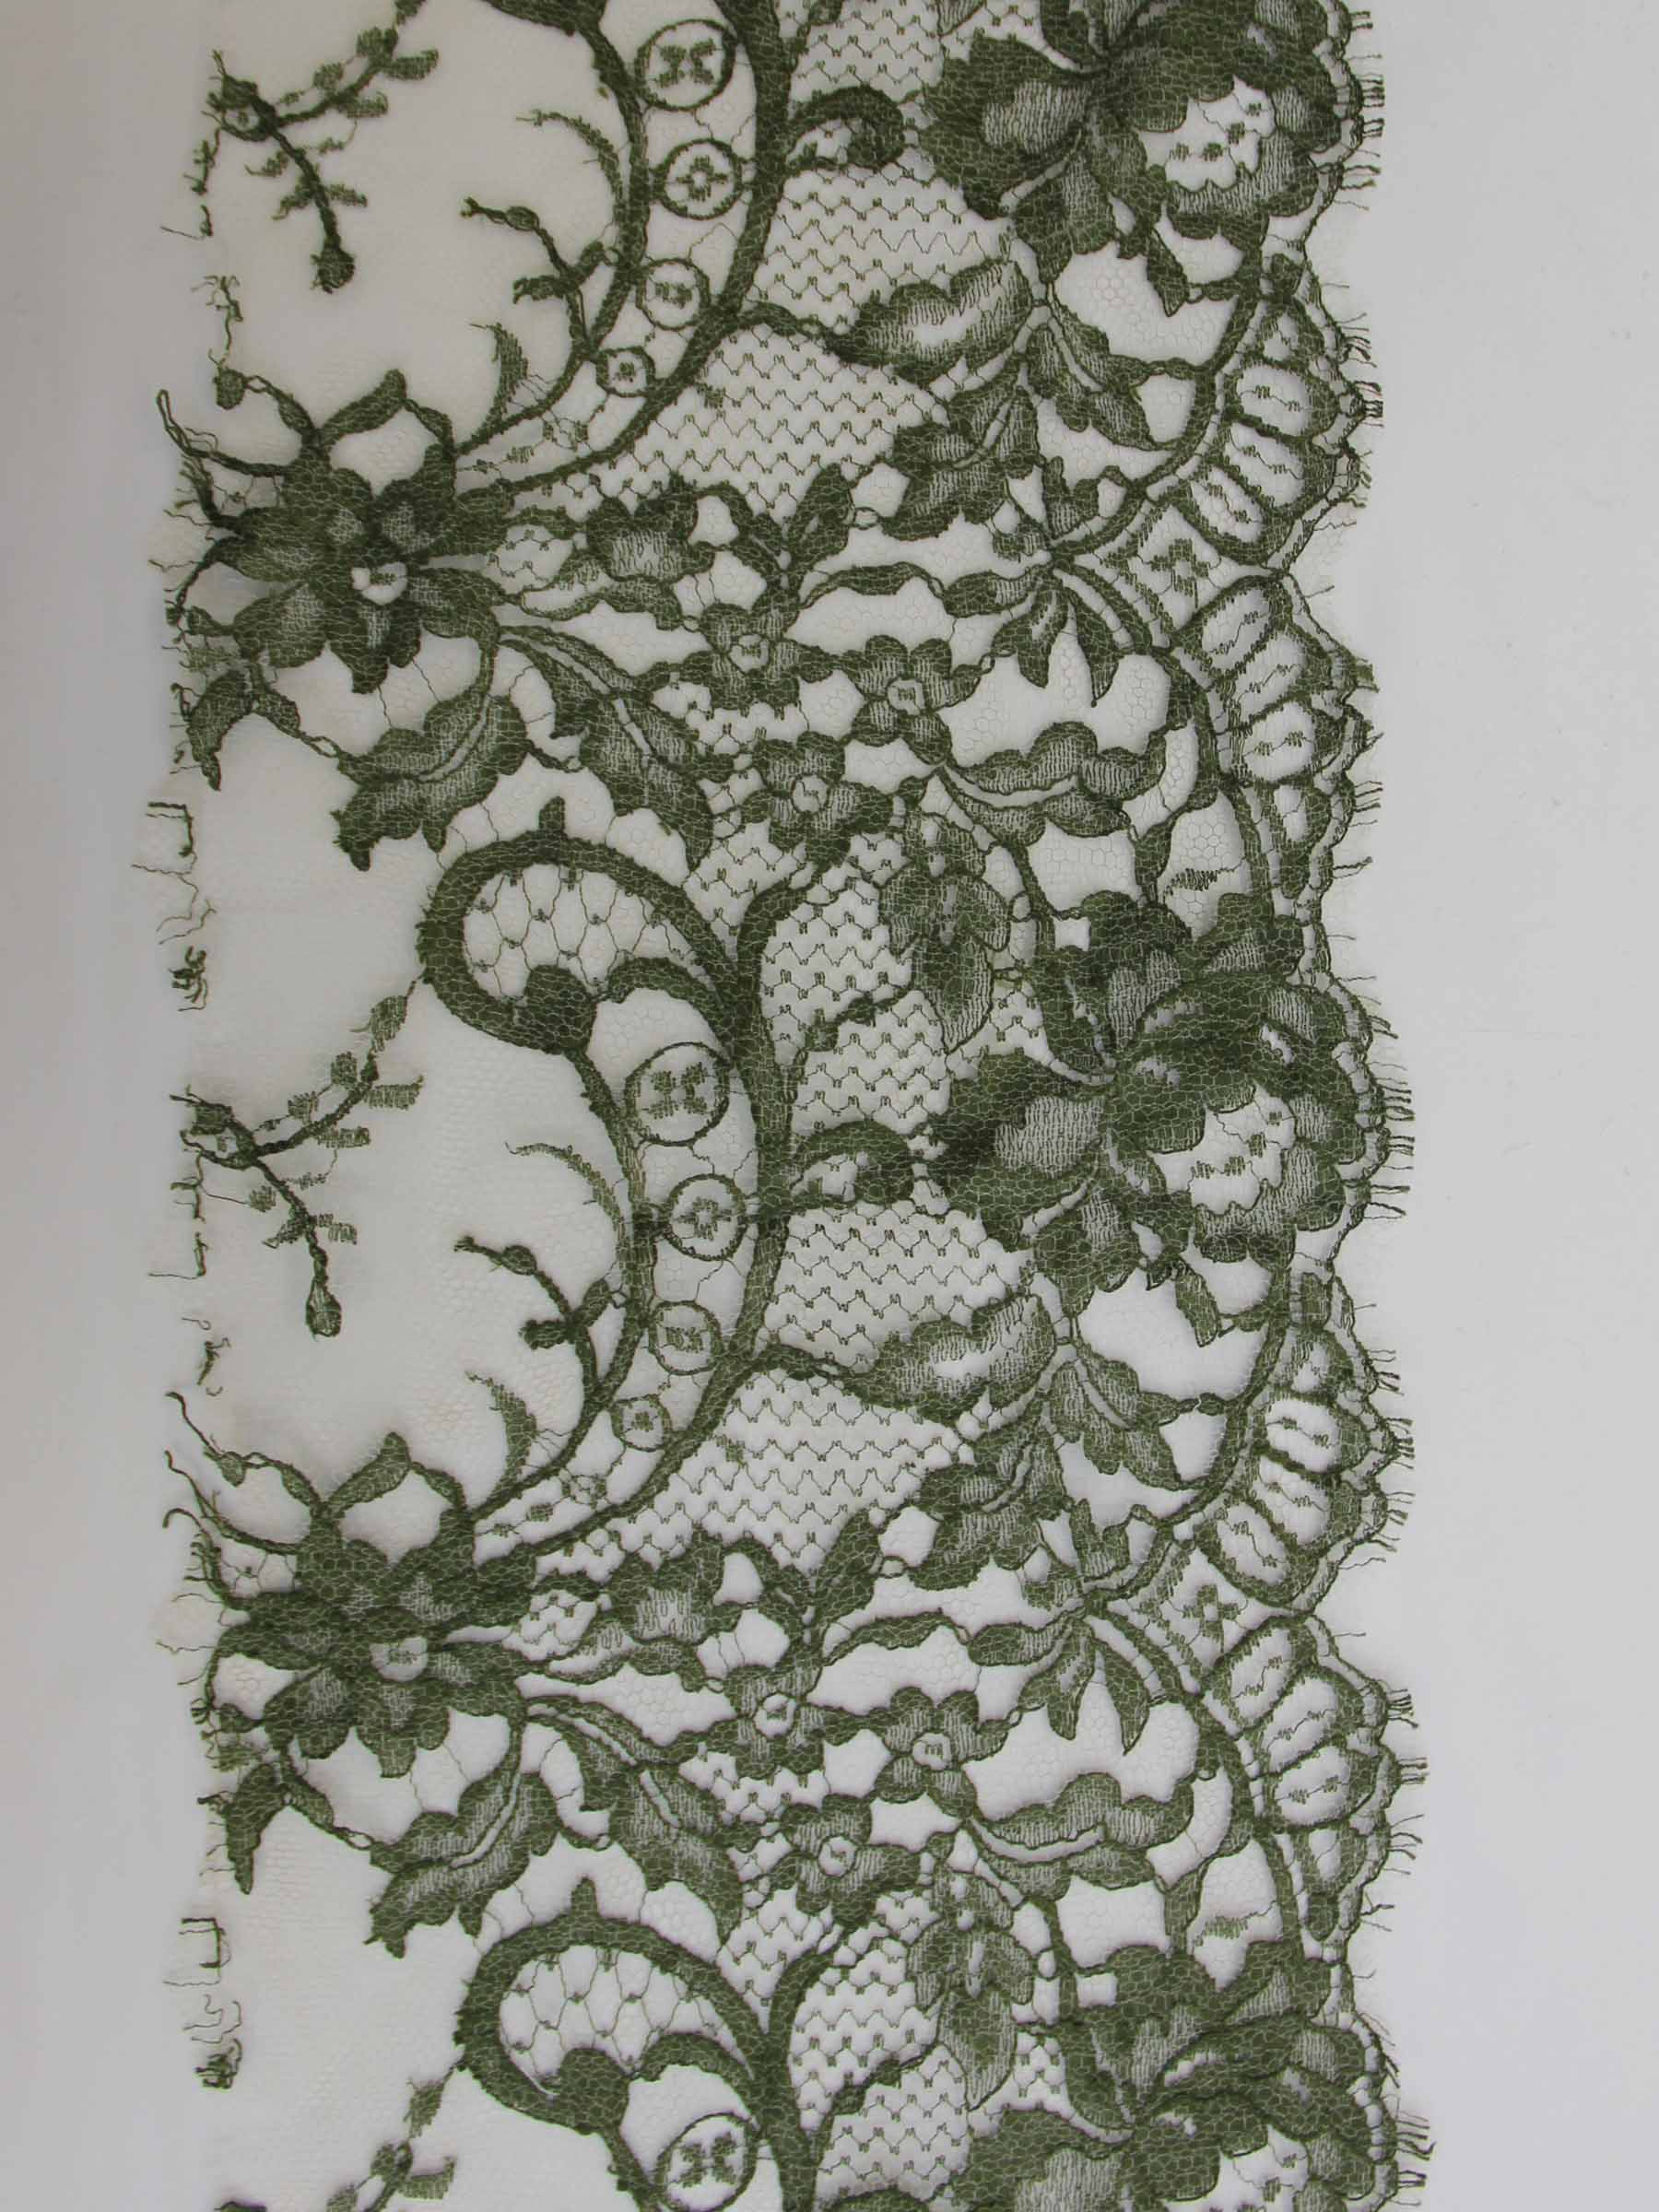 Bordure en dentelle verte olive - Kate.